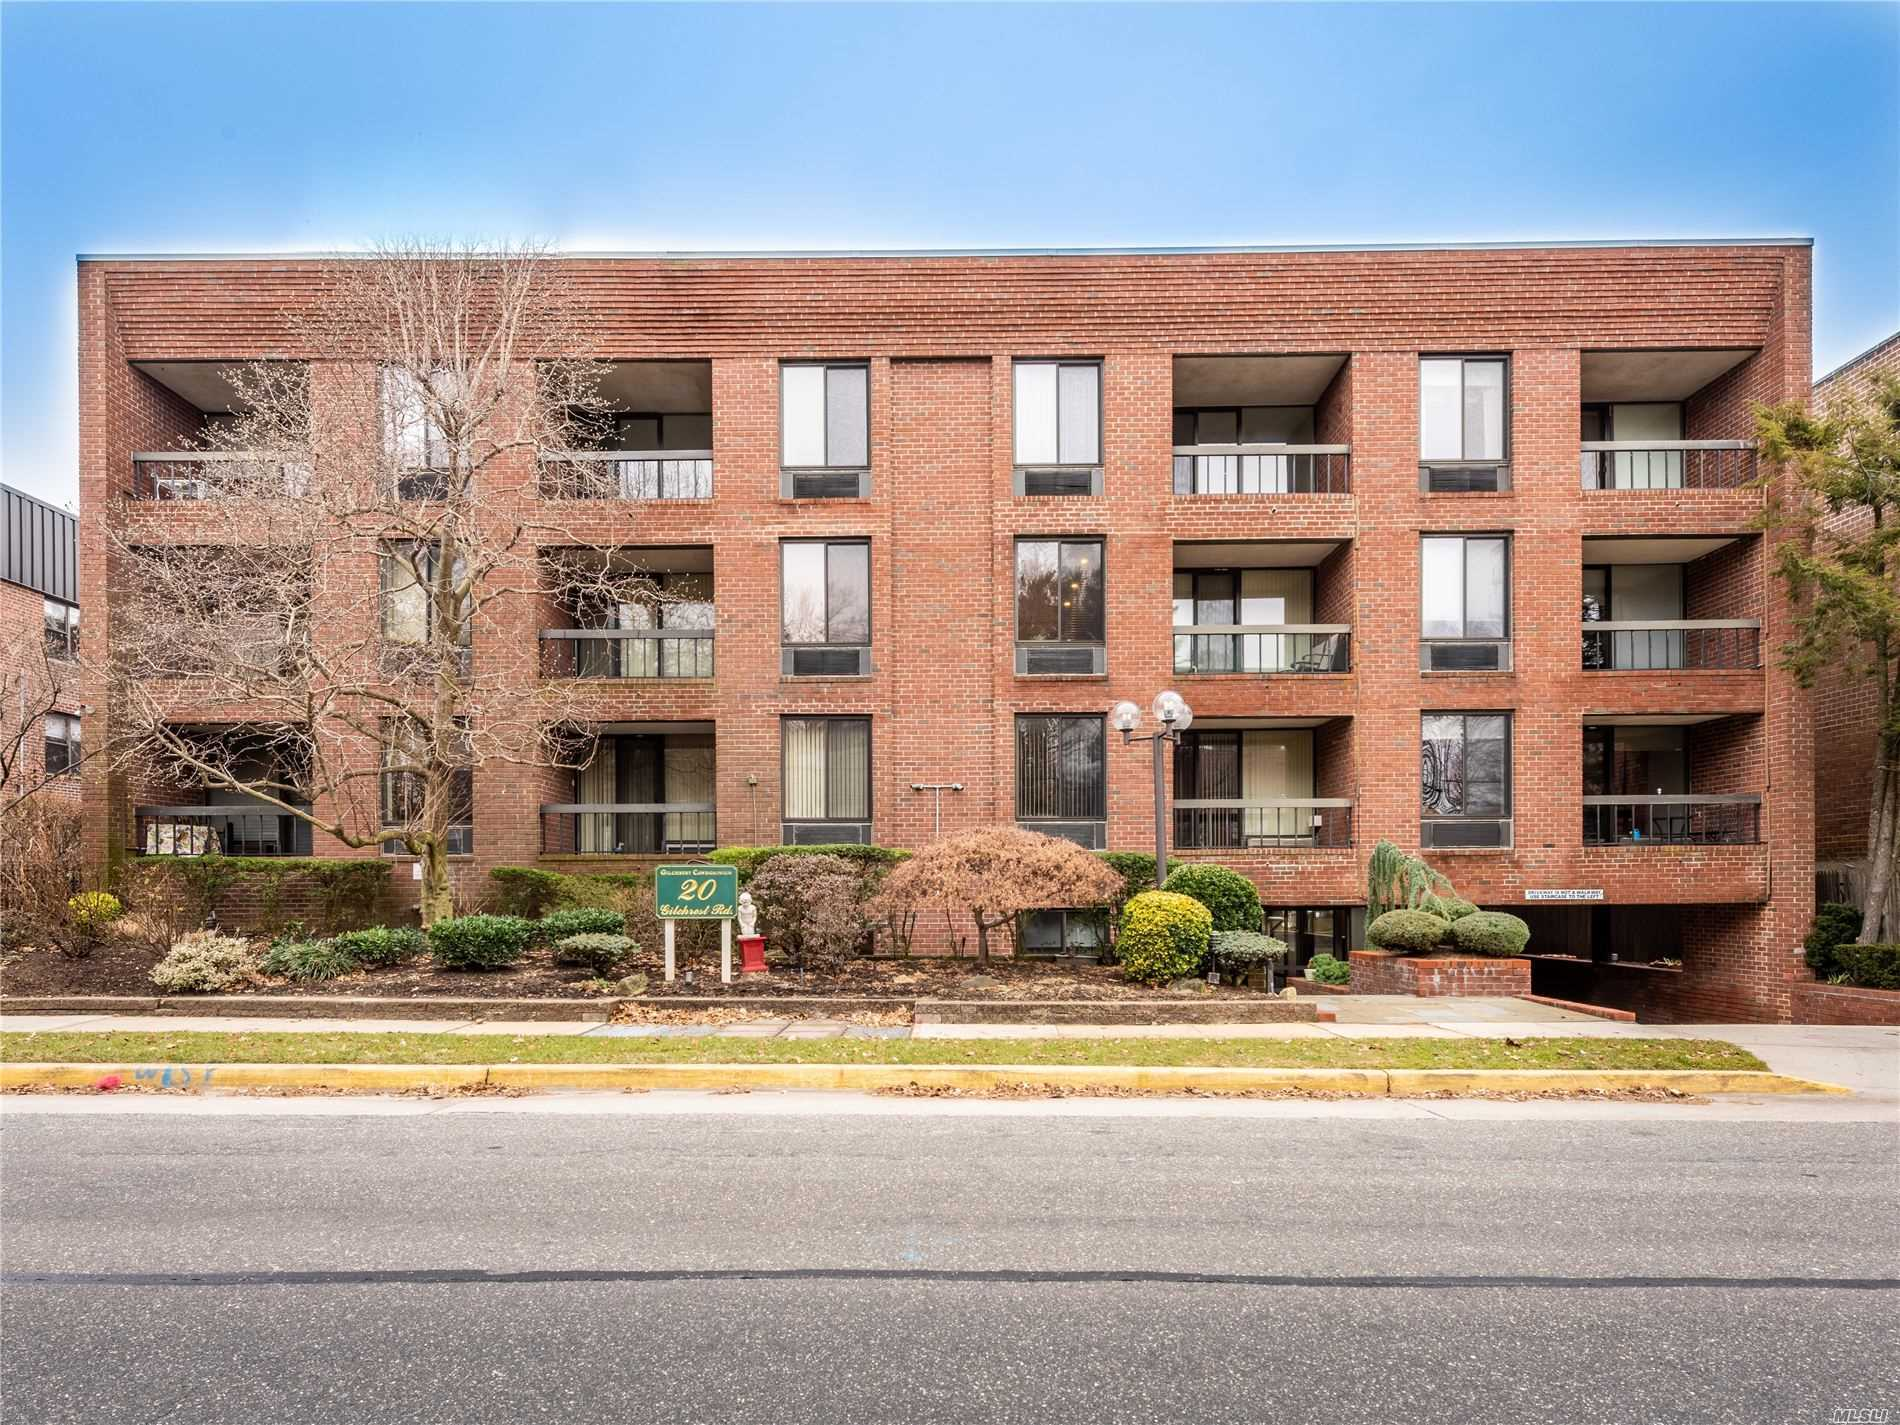 Property for sale at 20 Gilchrest Rd. # 1D, Great Neck NY 11021, Great Neck,  New York 11021